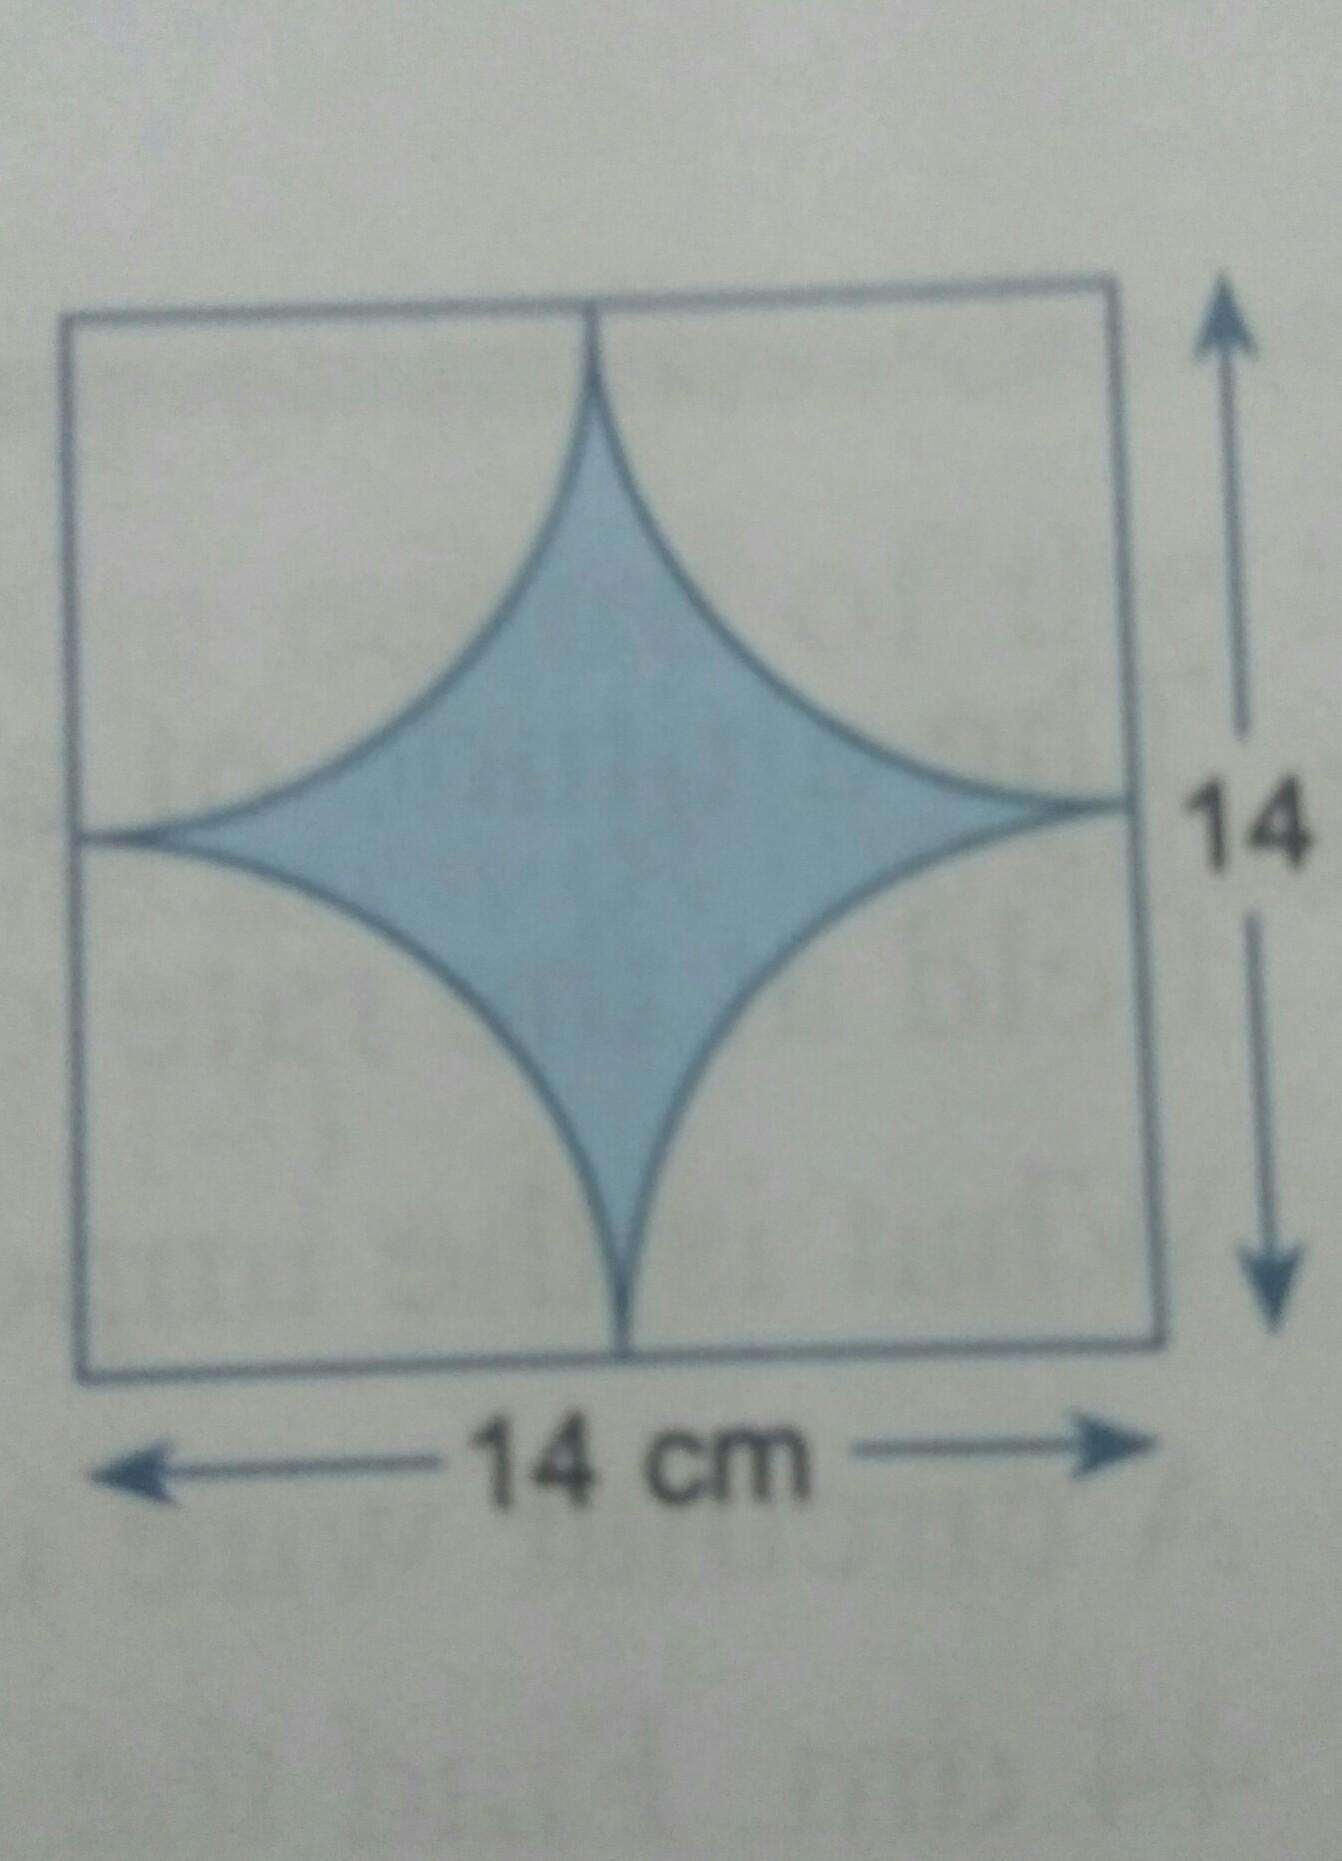 Calculate The Area And Perimeter Of The Shaded Part Of The